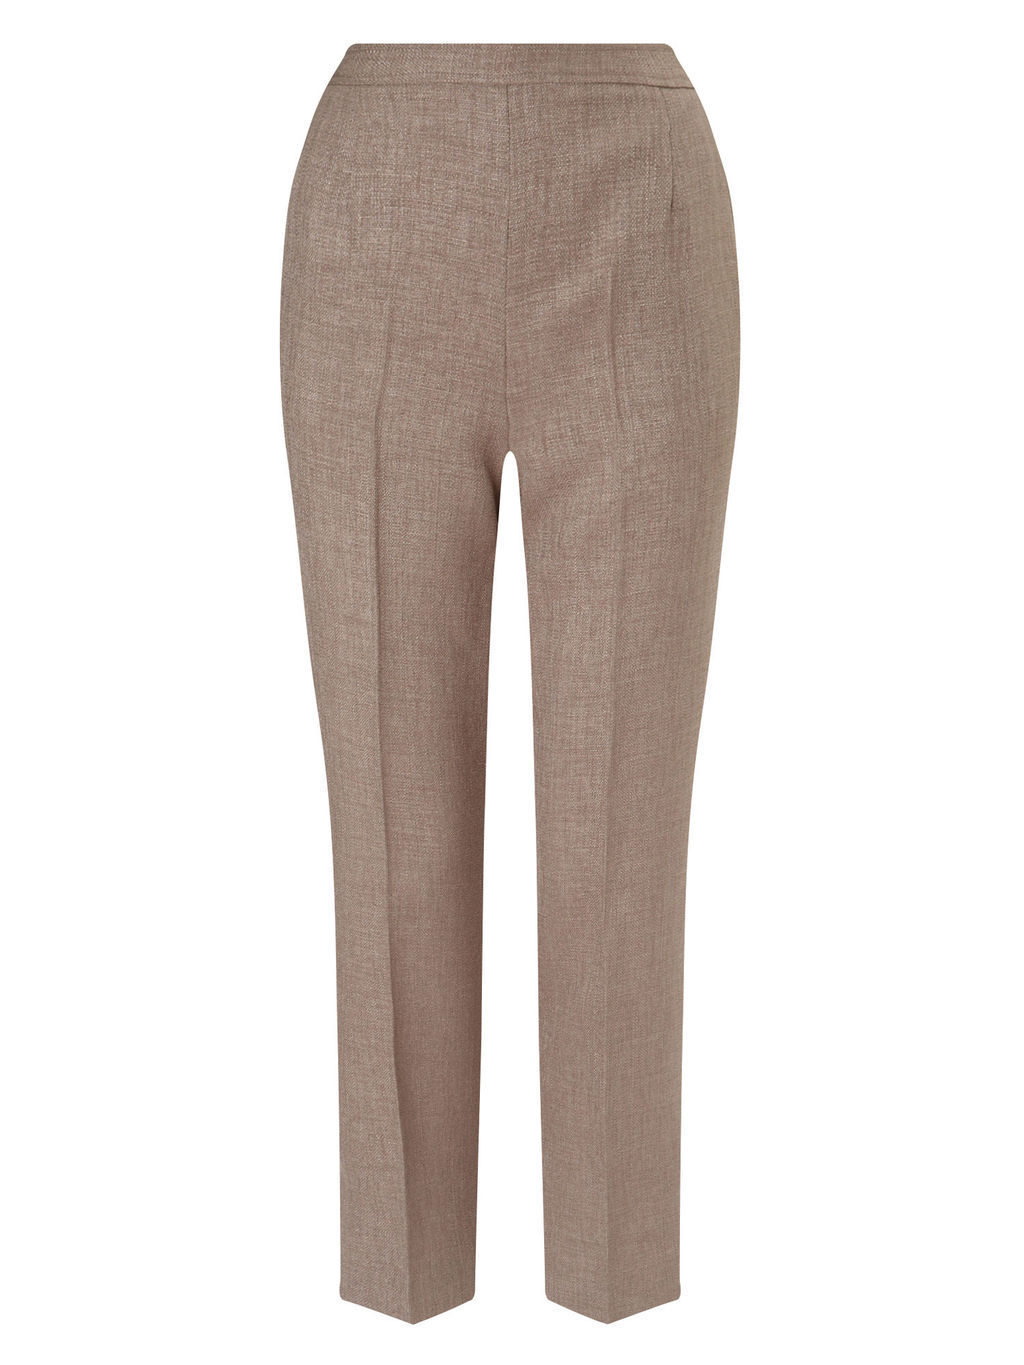 Basketweave Trouser Short - waist: high rise; predominant colour: taupe; occasions: casual, creative work; length: ankle length; fibres: cotton - mix; waist detail: feature waist detail; fit: slim leg; pattern type: fabric; texture group: woven light midweight; style: standard; pattern: marl; pattern size: light/subtle (bottom); season: s/s 2016; wardrobe: basic